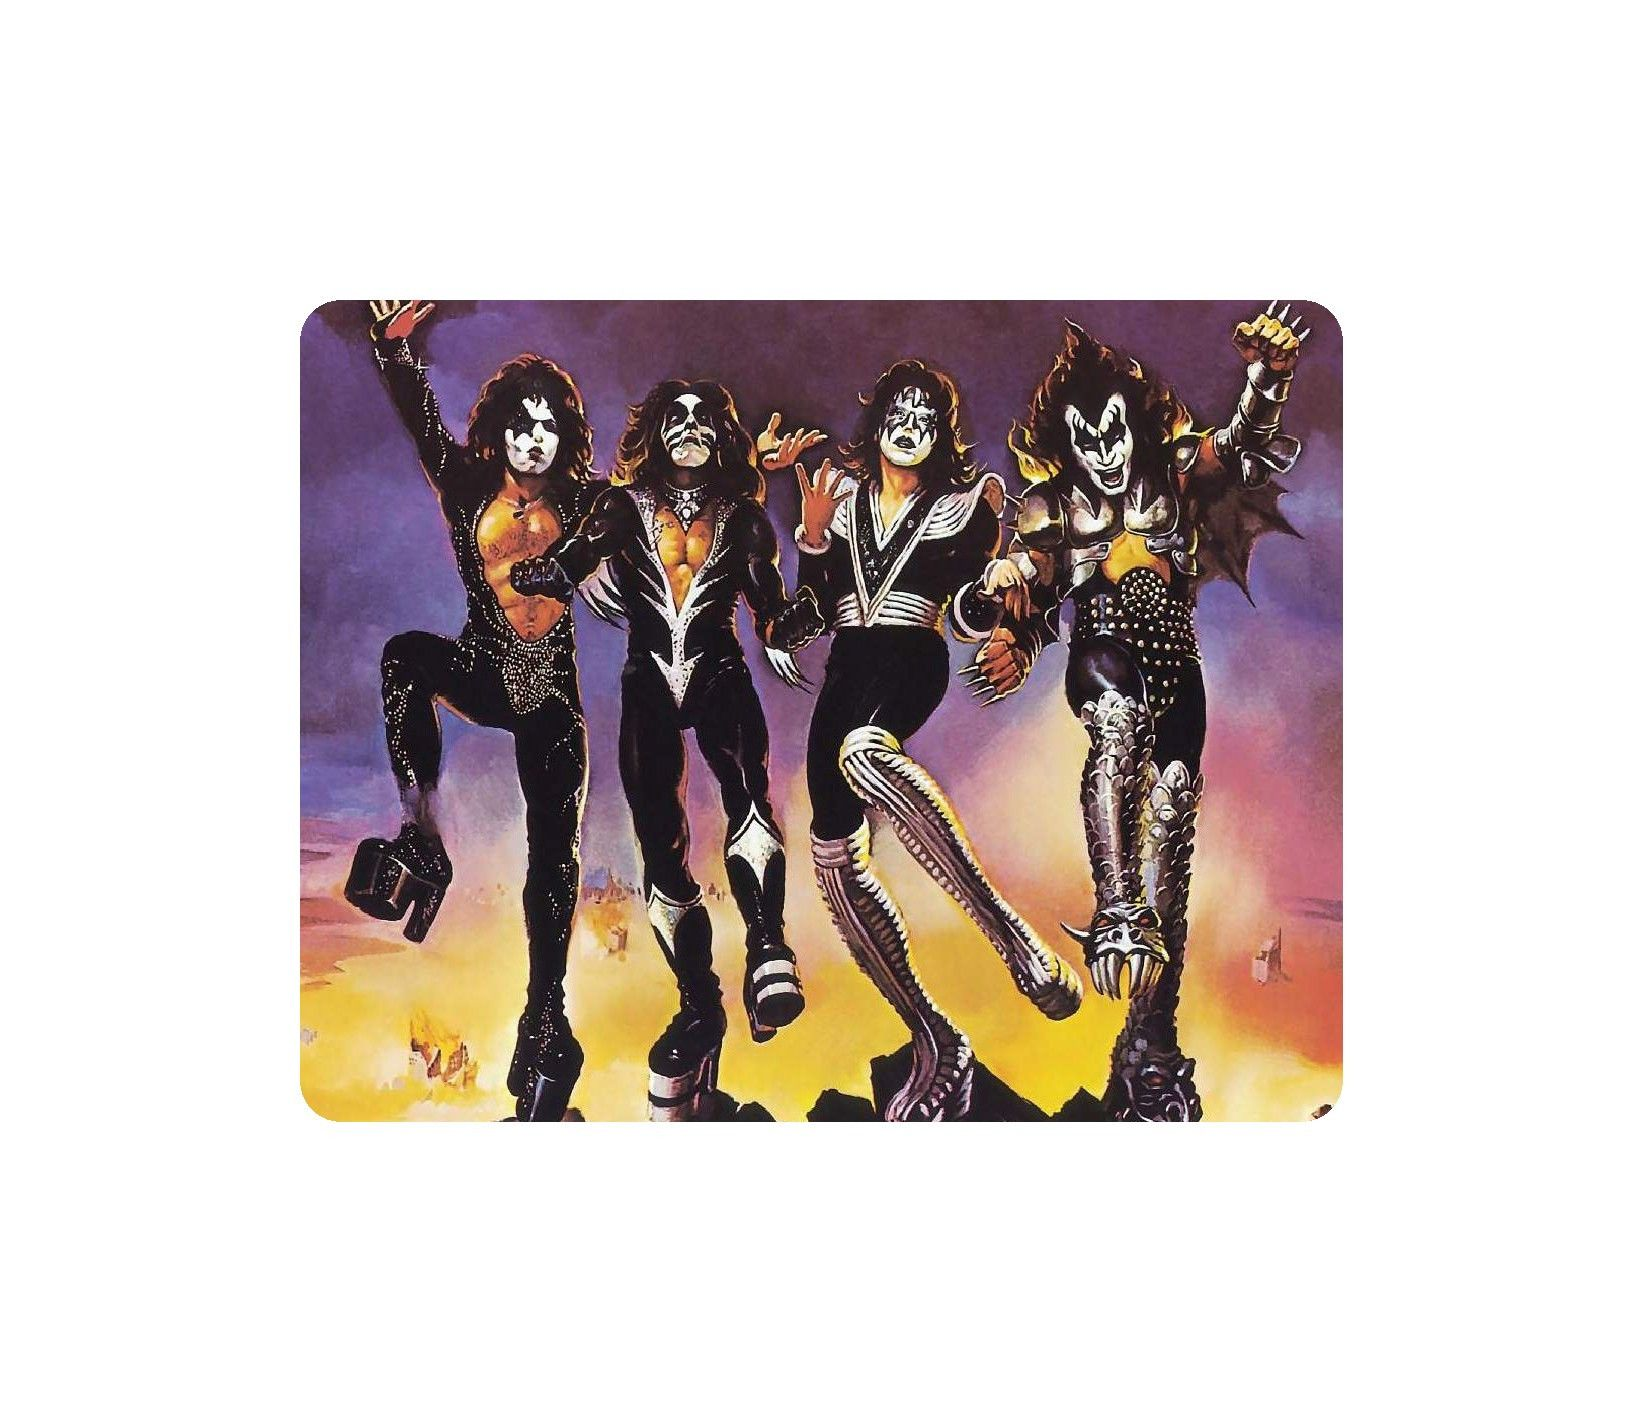 Awesome Music Mouse Pad Kiss (With images) Kiss rock